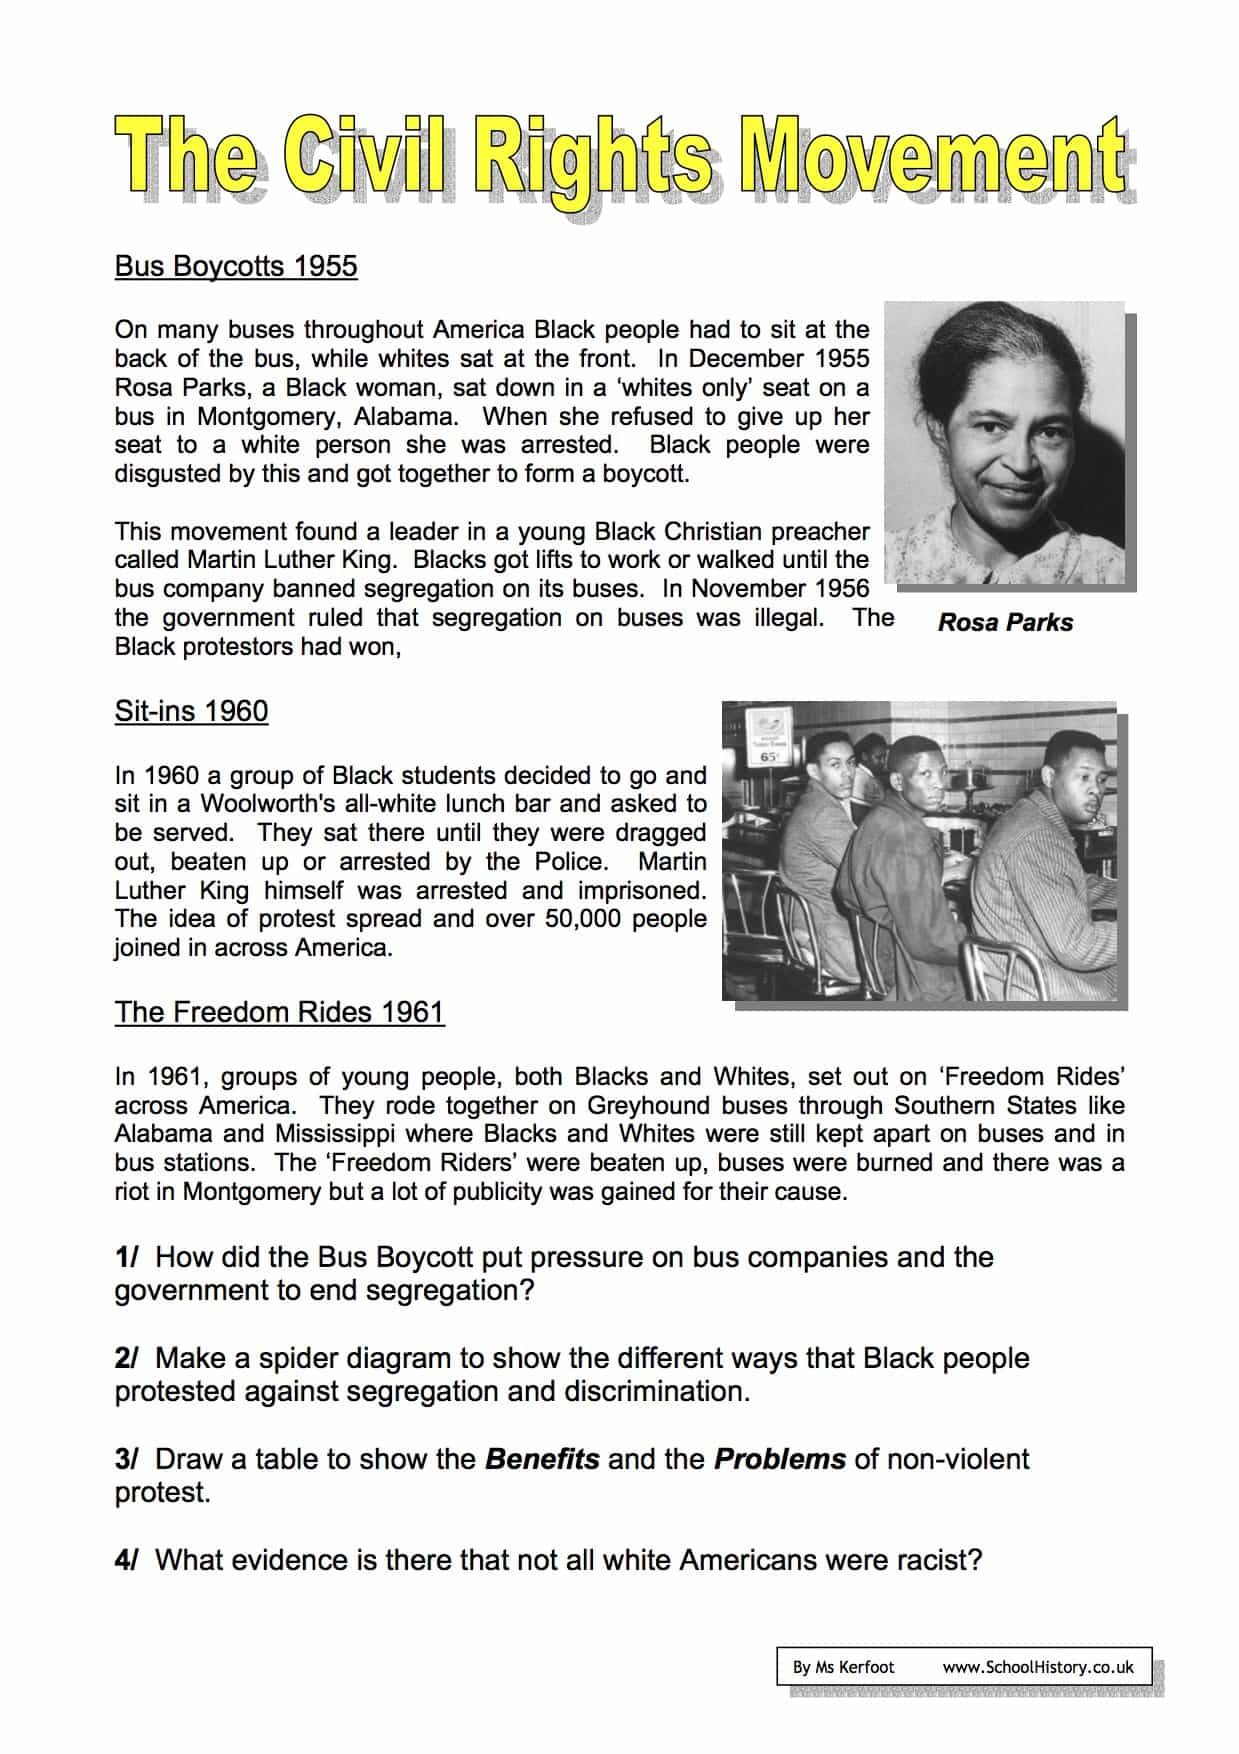 The Civil Rights Movement Worksheets Year 9 Free PDF